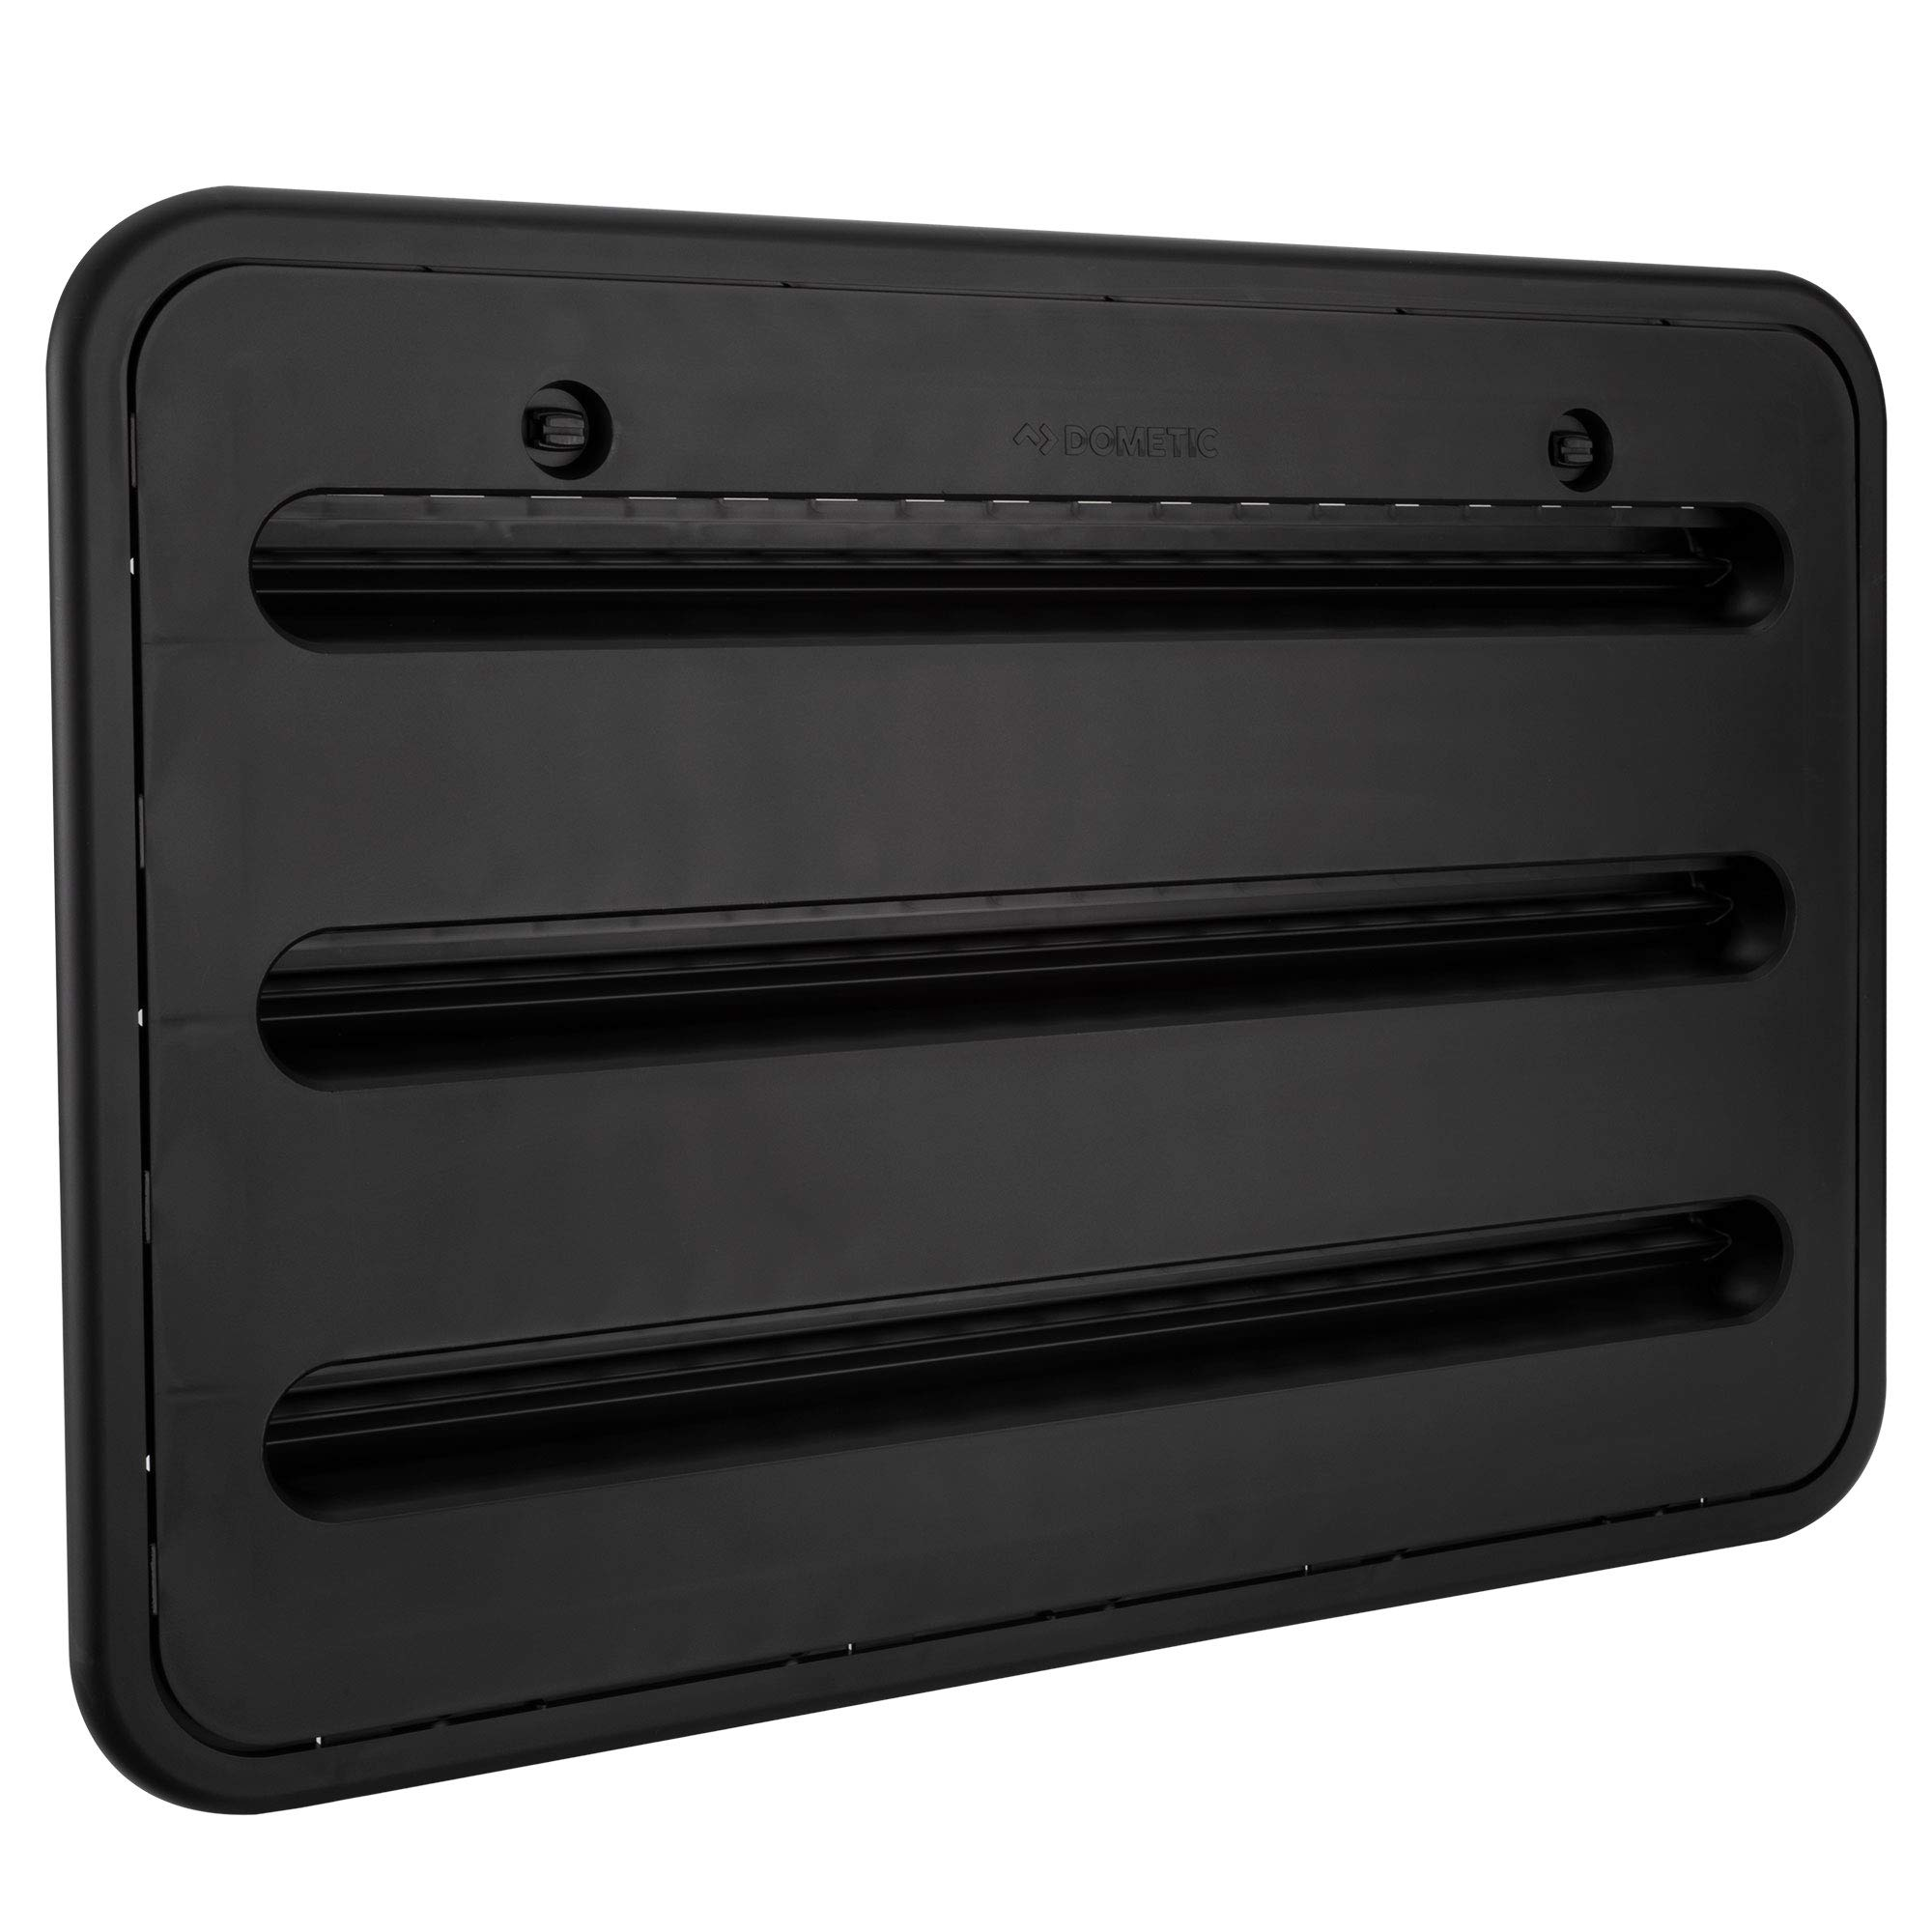 RV Camper Trailer 24'' Dometic Refrigerator Side Wall Vent | Black 3109350.065